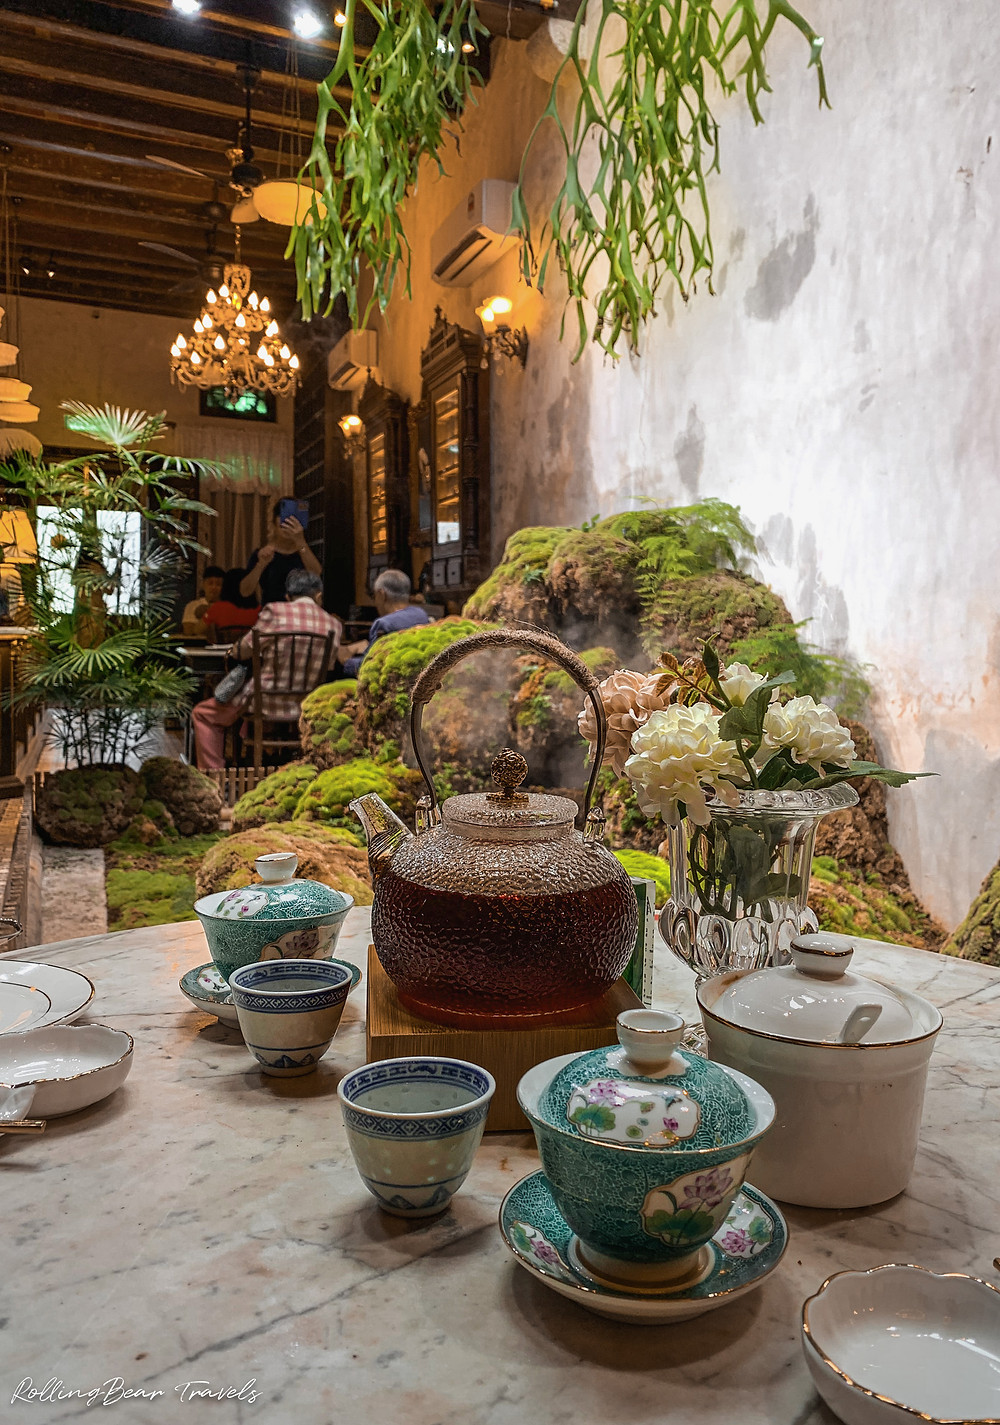 Chinese tea served in heritage Peranakan dining style at Bao Teck Teahouse | RollingBear Travels photography.